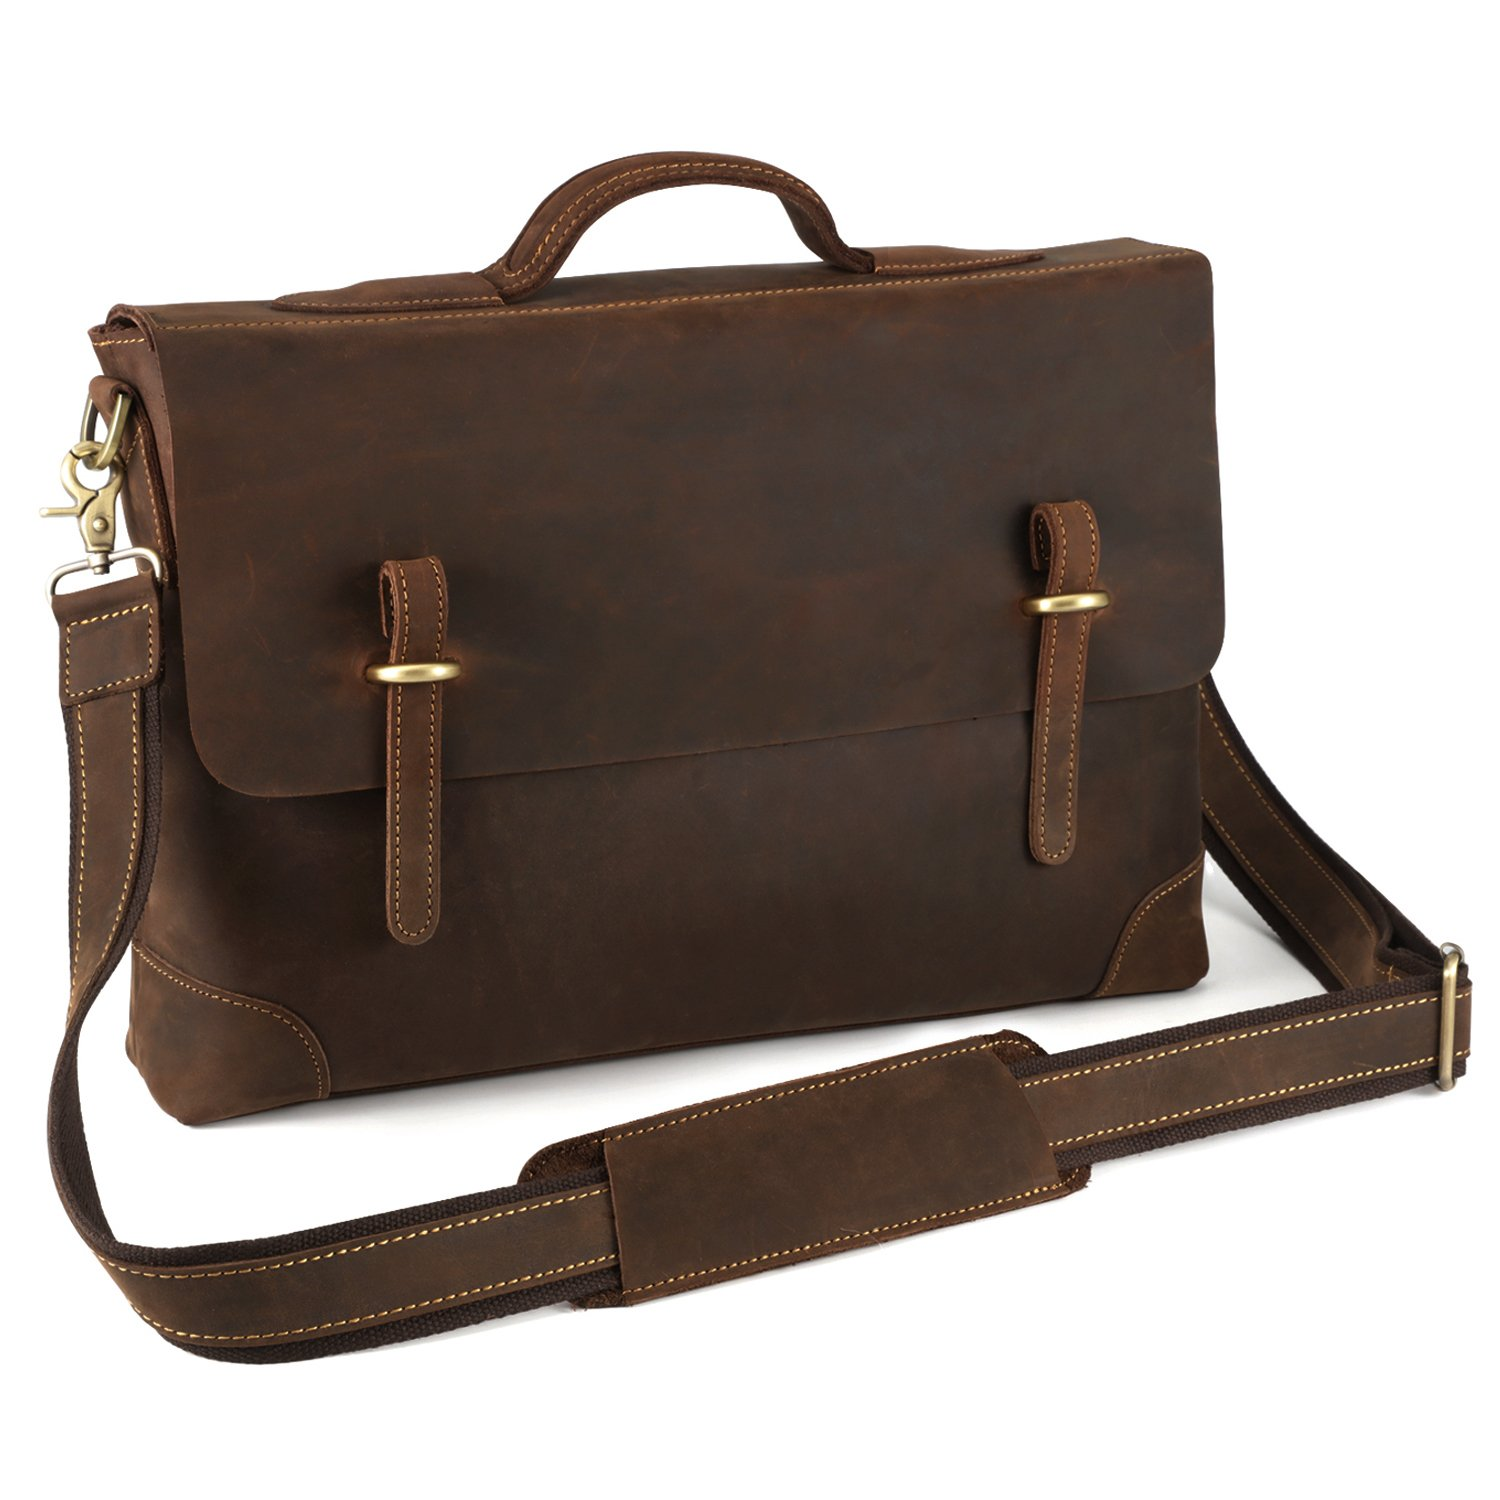 Kattee Genuine Leather Messenger Bag Tote, Leisure 15 Inch Laptop Briefcase Dark Coffee by Kattee (Image #3)